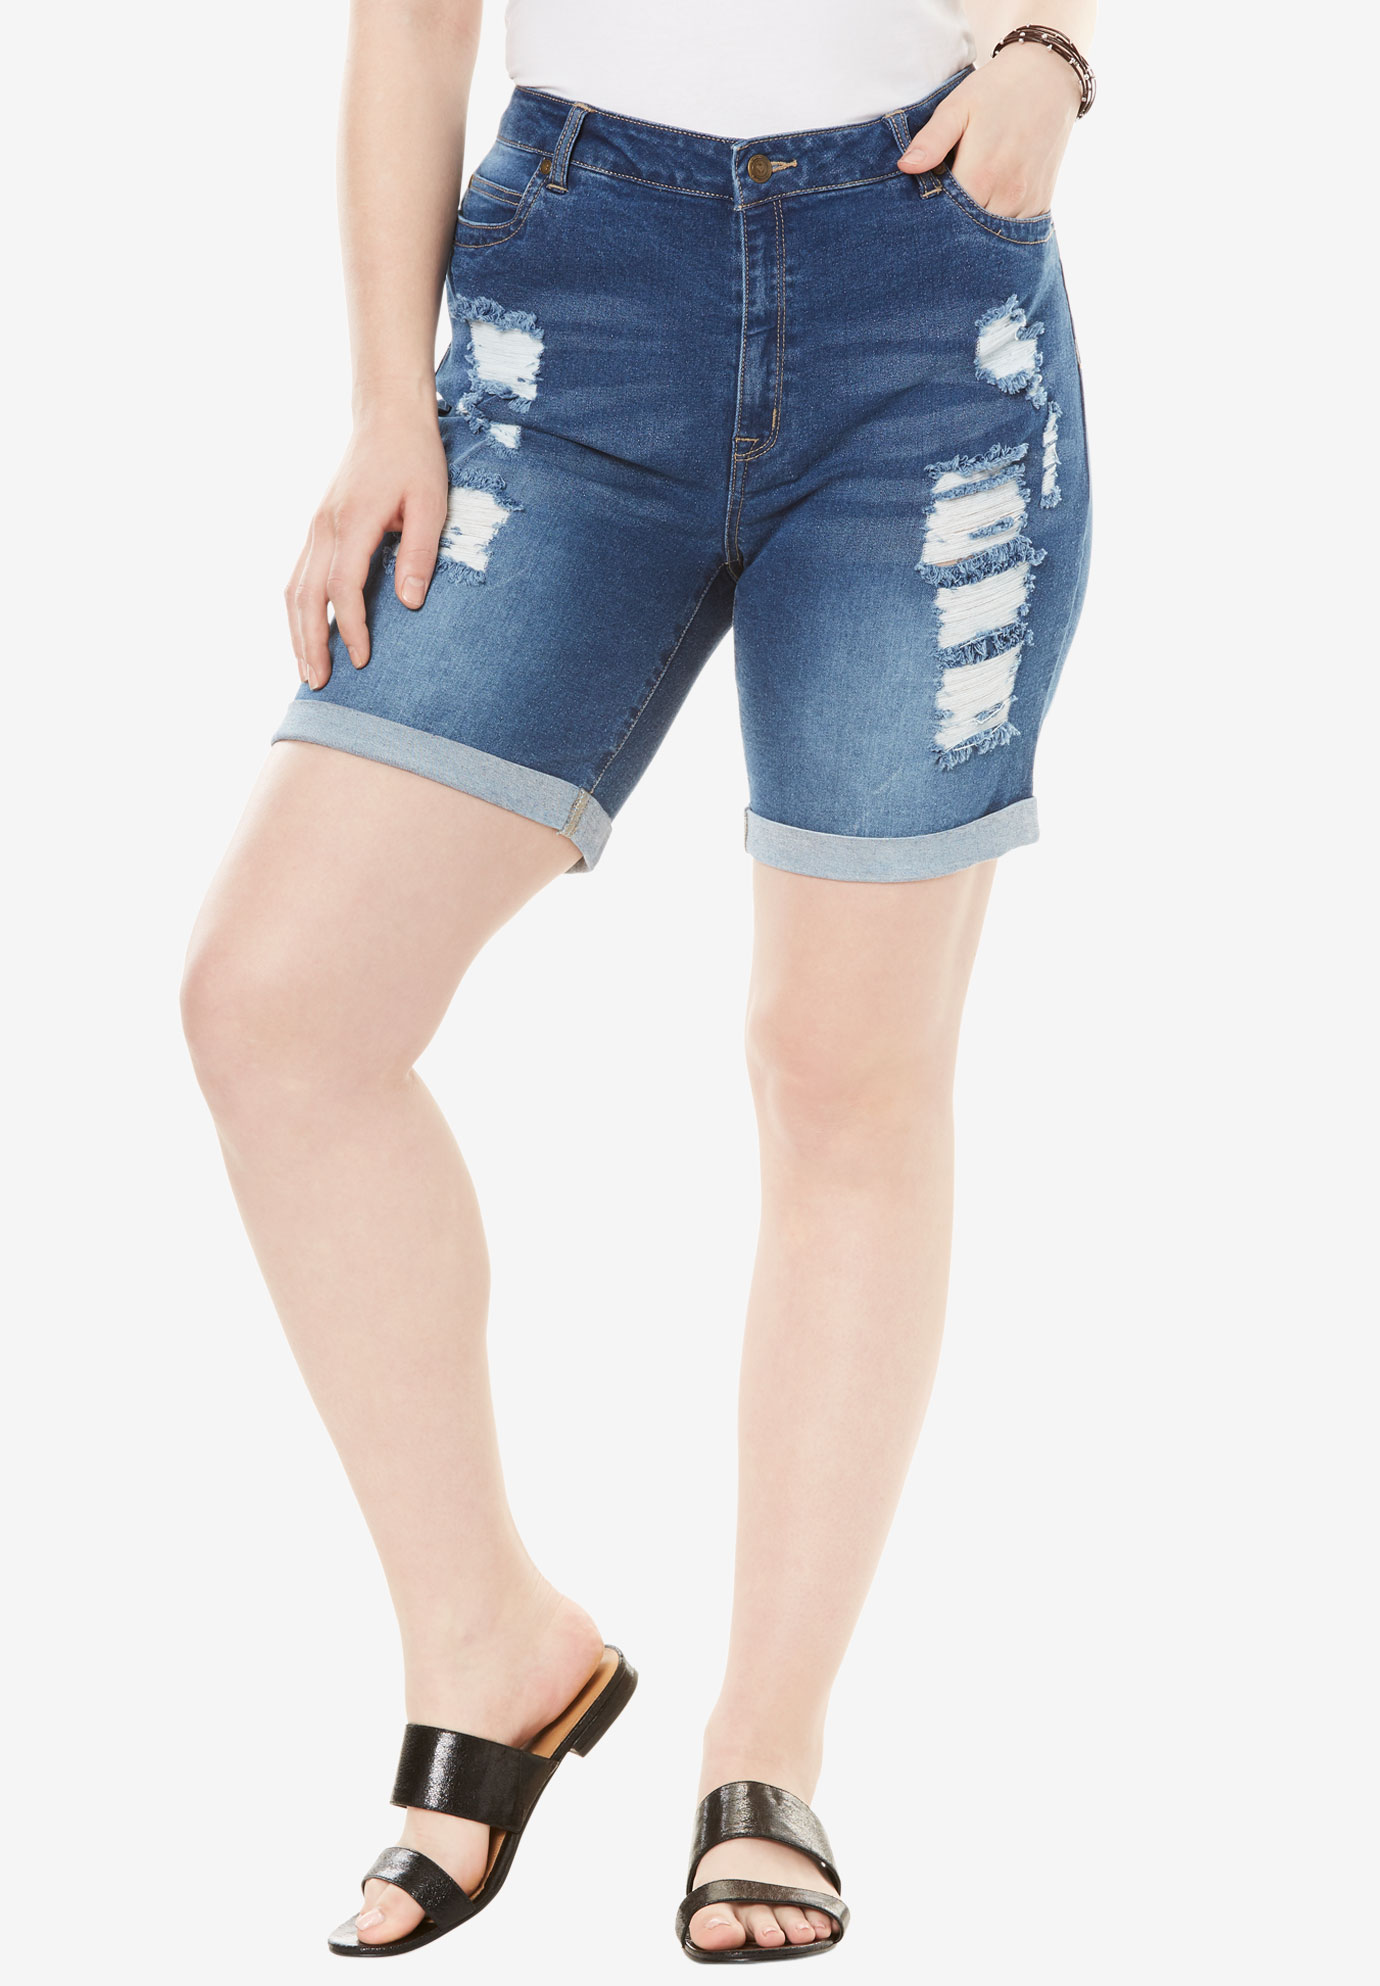 344611d5a31aa Distressed Shorts by Denim 24 7®